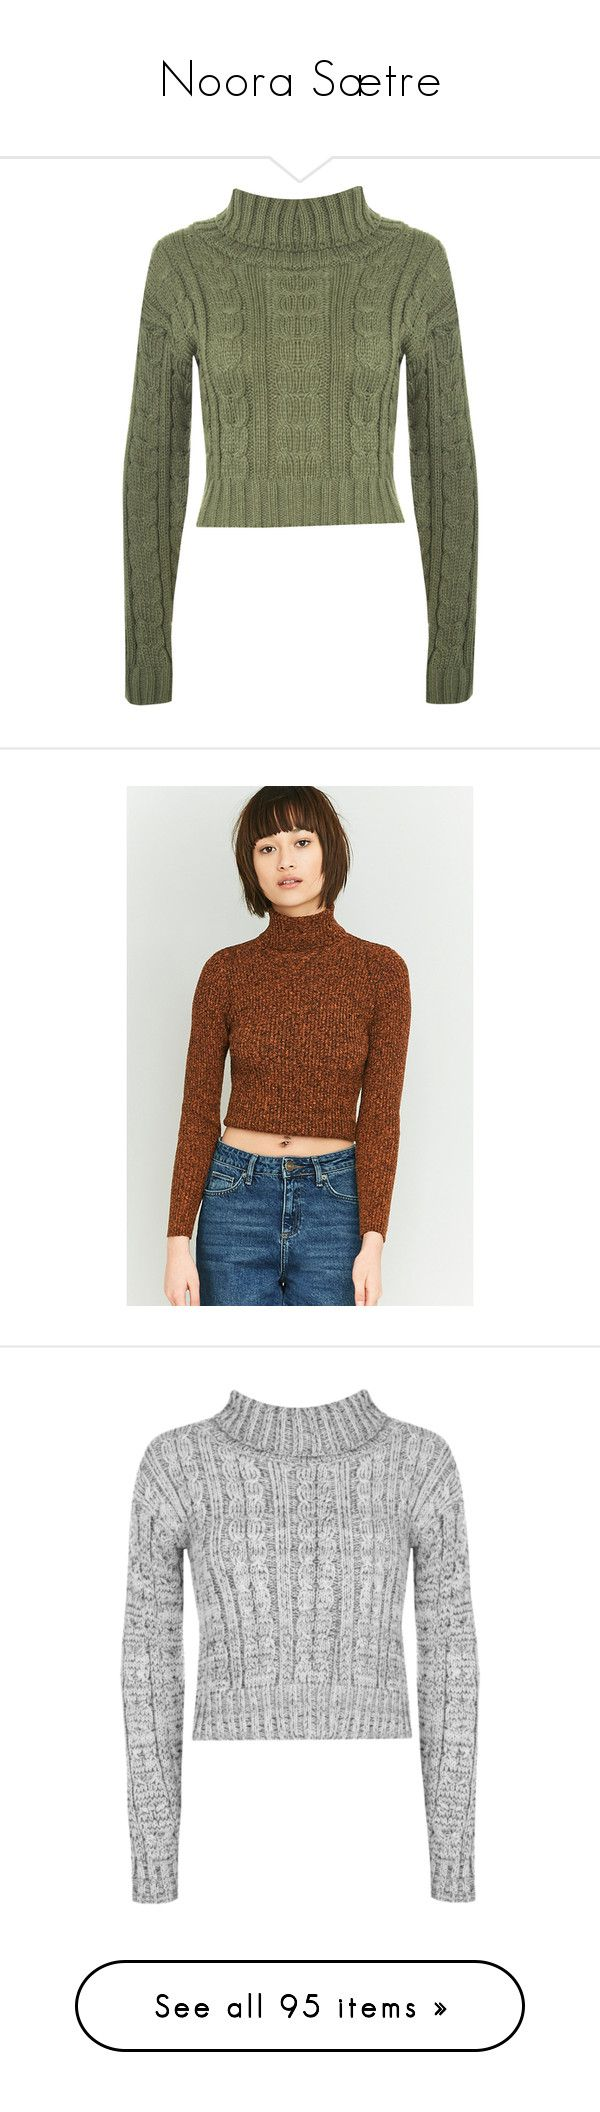 """""""Noora Sætre"""" by anna-gummerus ❤ liked on Polyvore featuring tops, sweaters, jumpers, shirts, 2016 sweater, green, cropped turtleneck sweater, chunky turtleneck sweaters, cable-knit sweater and chunky cable knit sweater"""